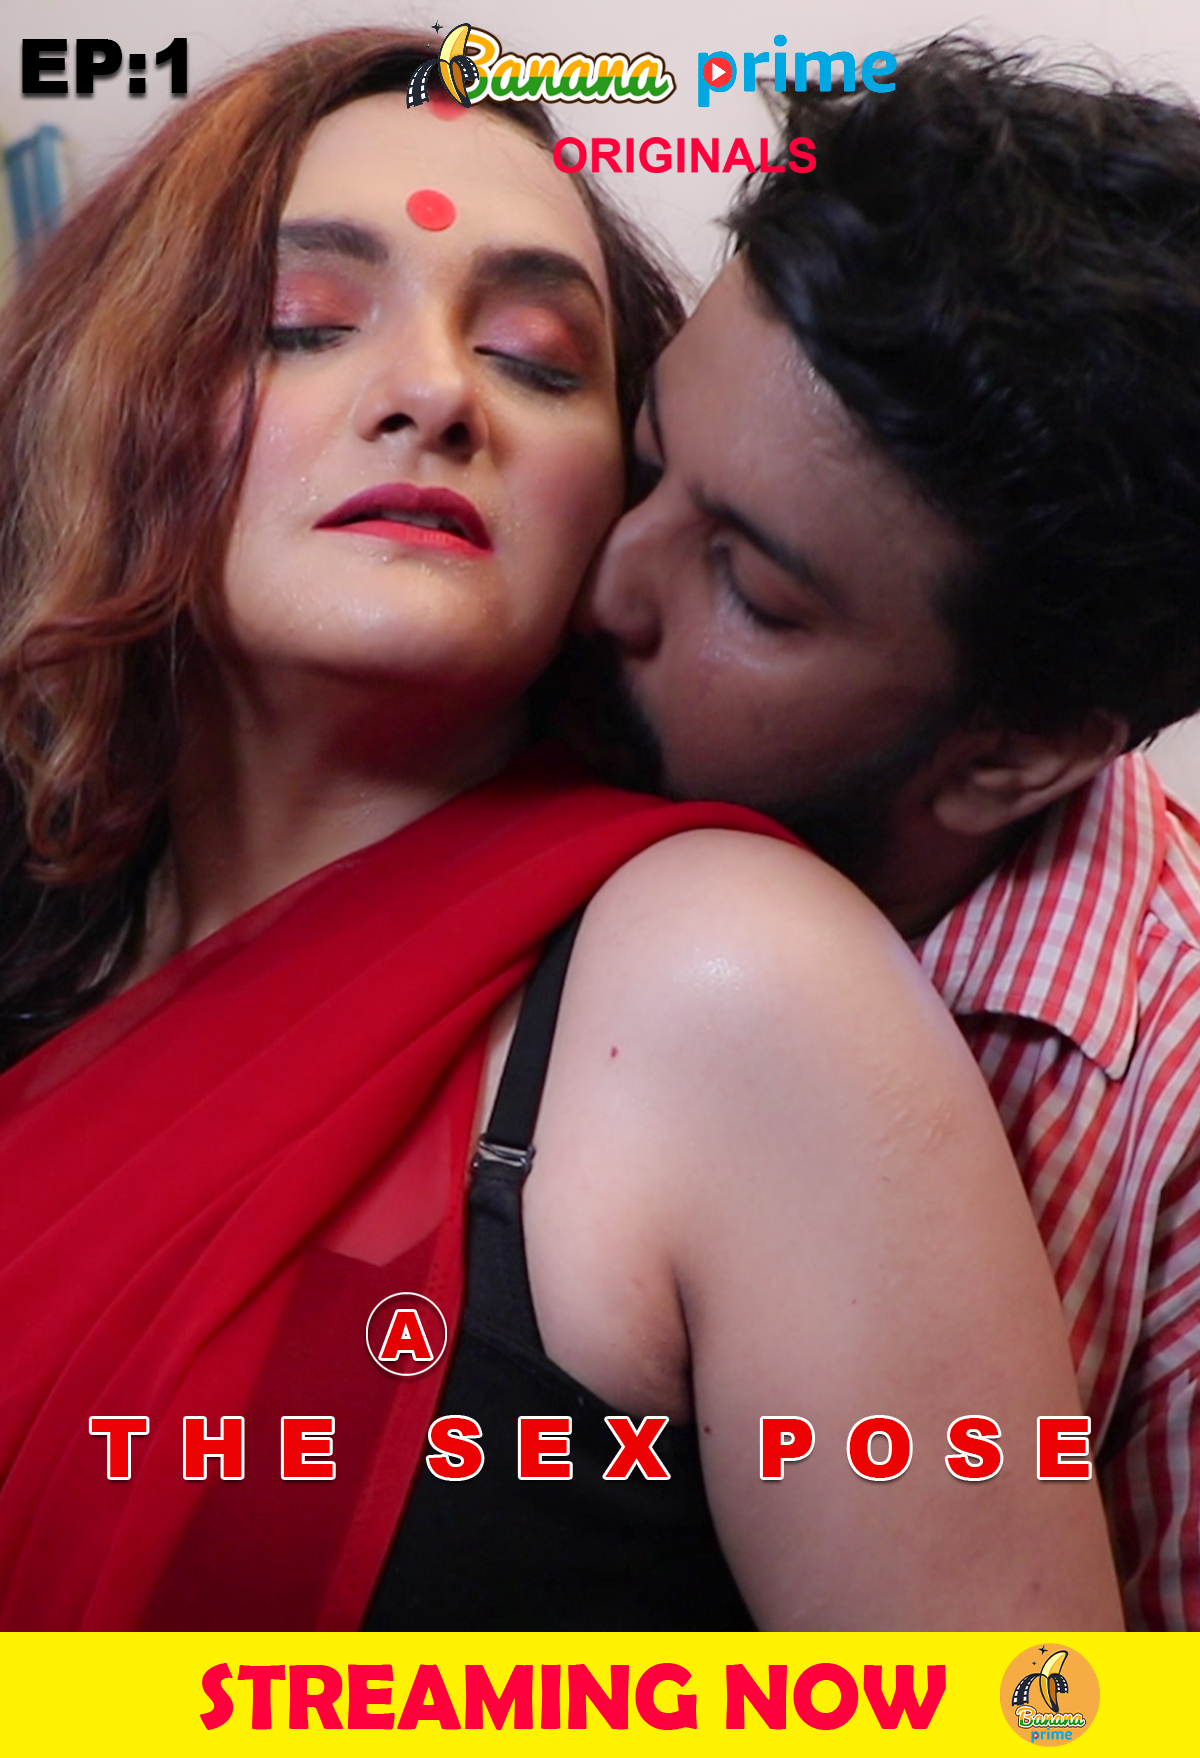 The Sex pose (2020) S01E01 Bengali Bananaprime Web Series 720p HDRip 101MB Download